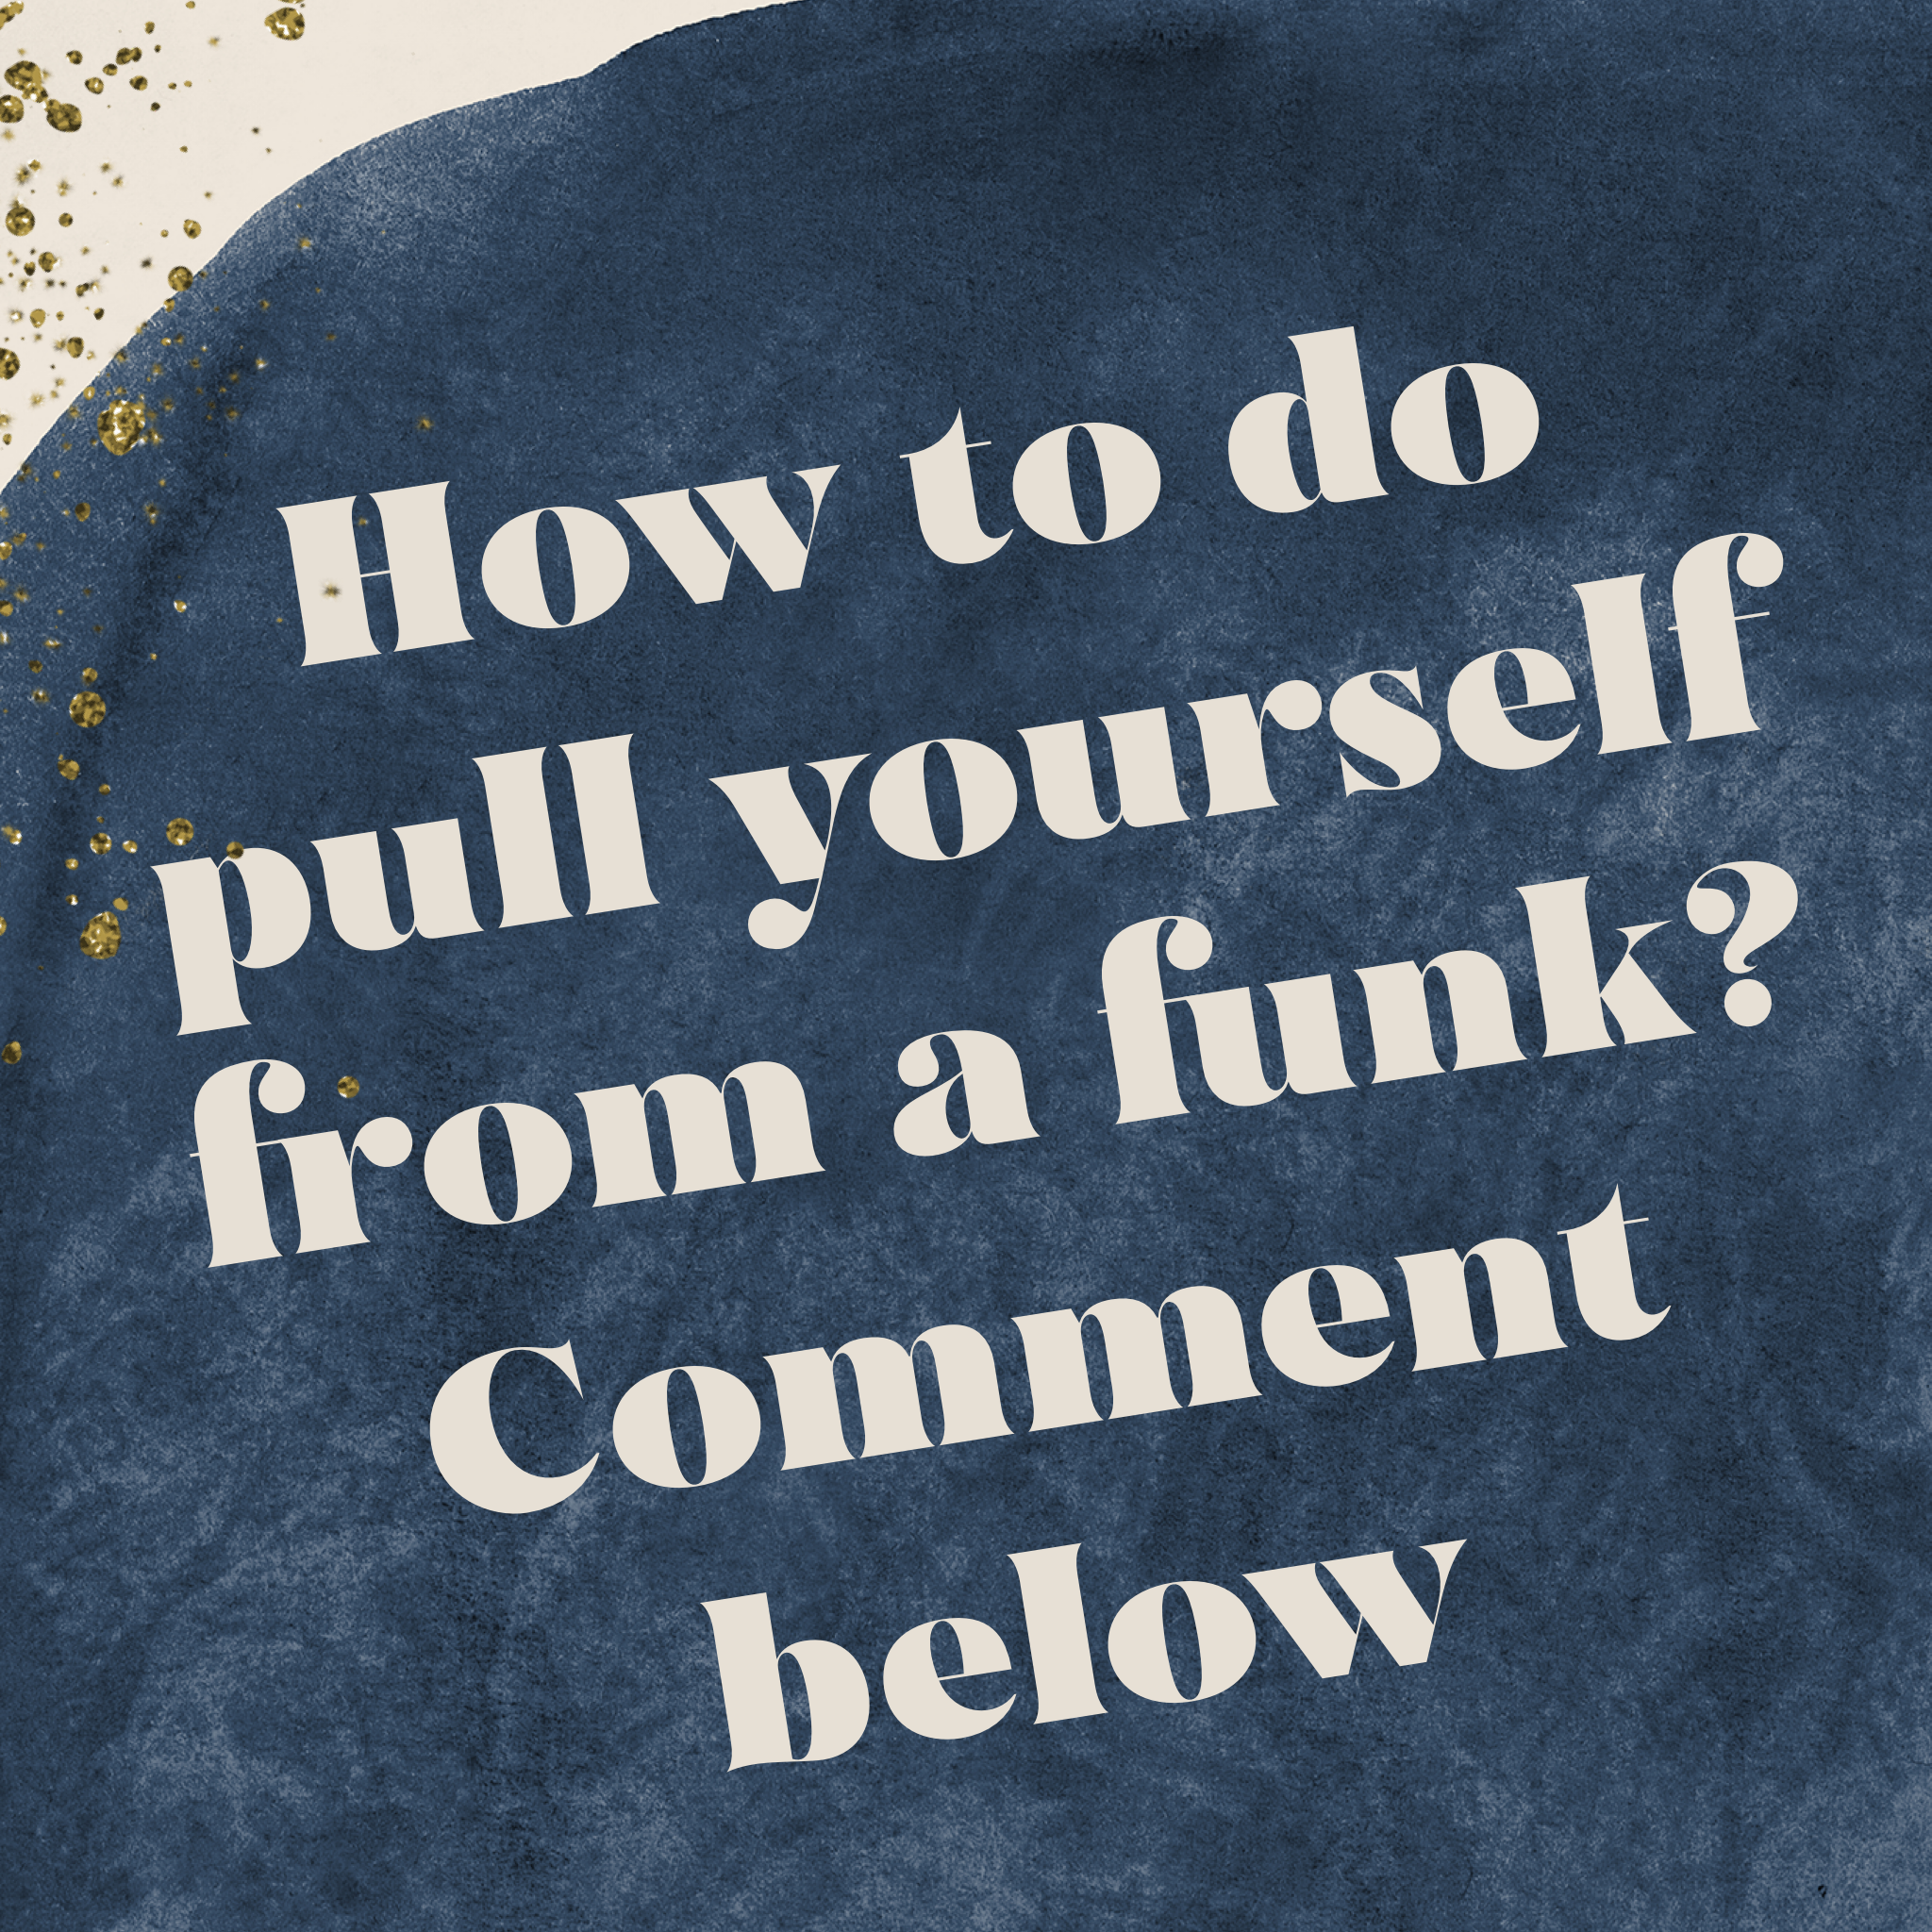 How to Pull Yourself from a funk